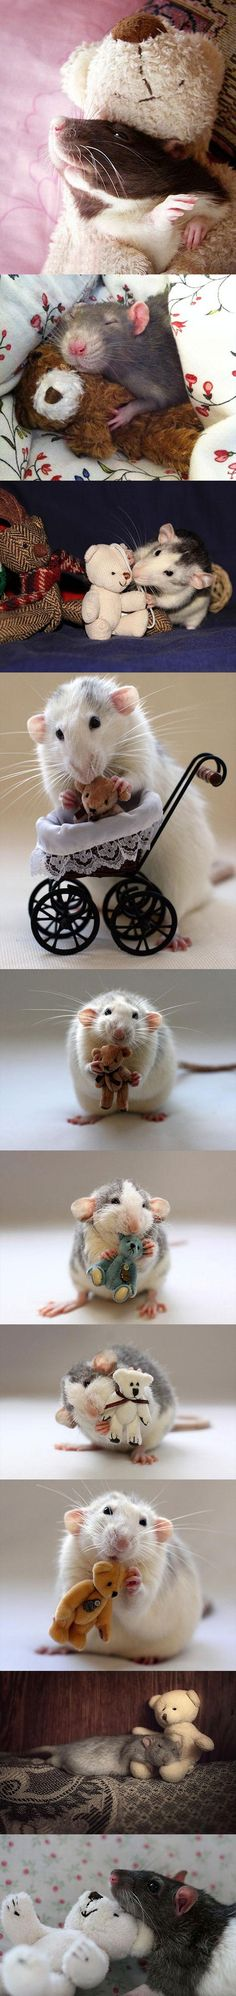 funny-rats-with-teddy-bears-sleeping-hug